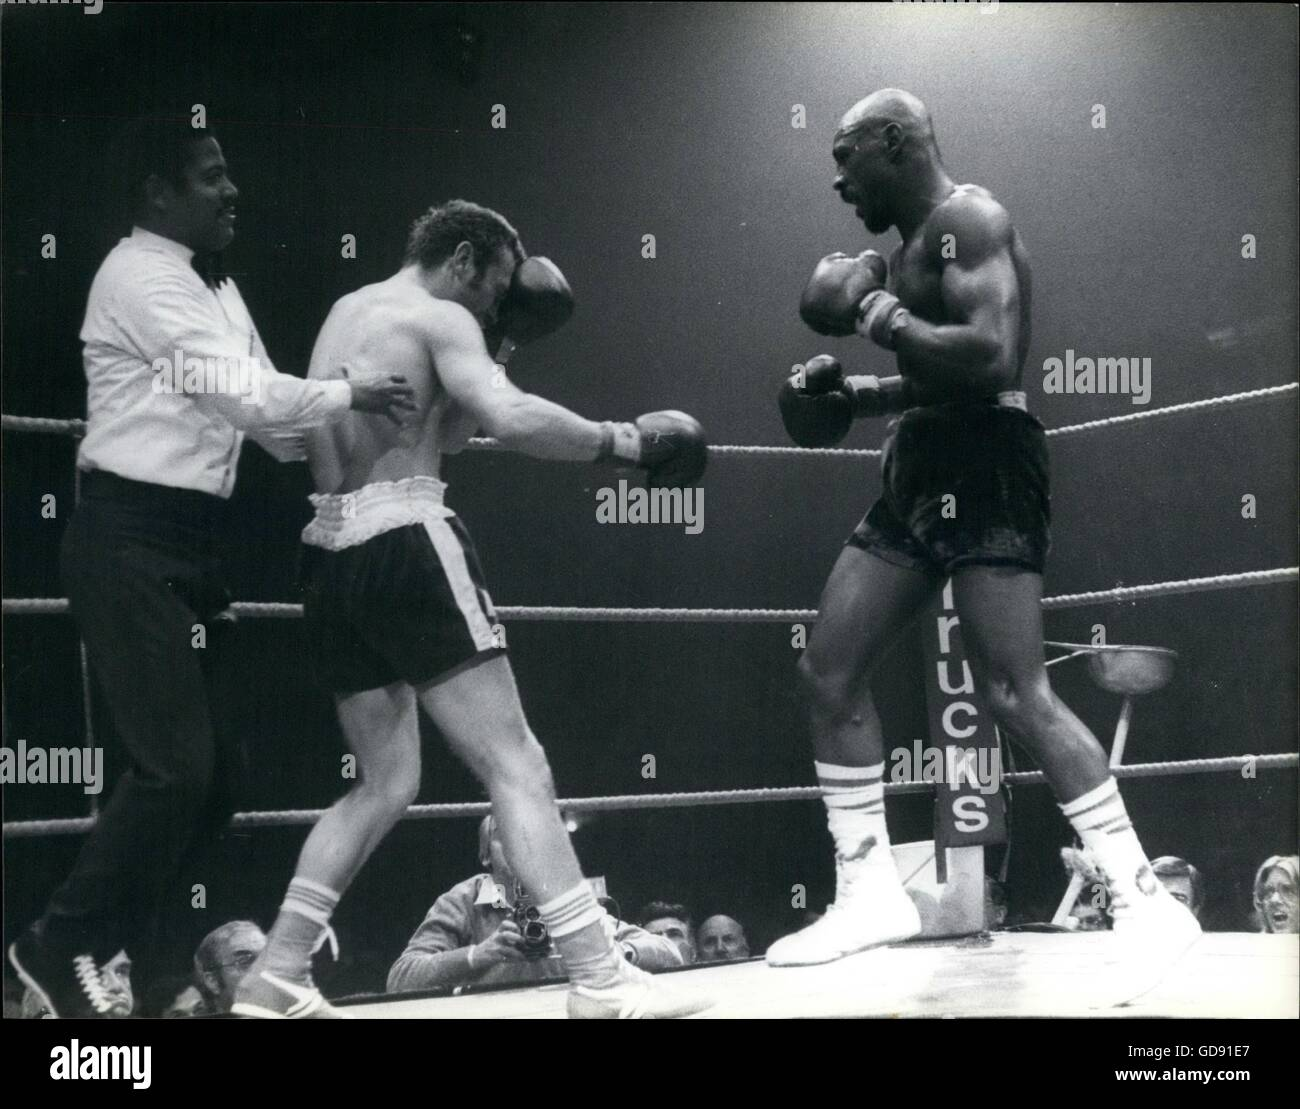 1961 - boxer ring black punch sports © Keystone Pictures USA/ZUMAPRESS.com/Alamy Live News Stock Photo